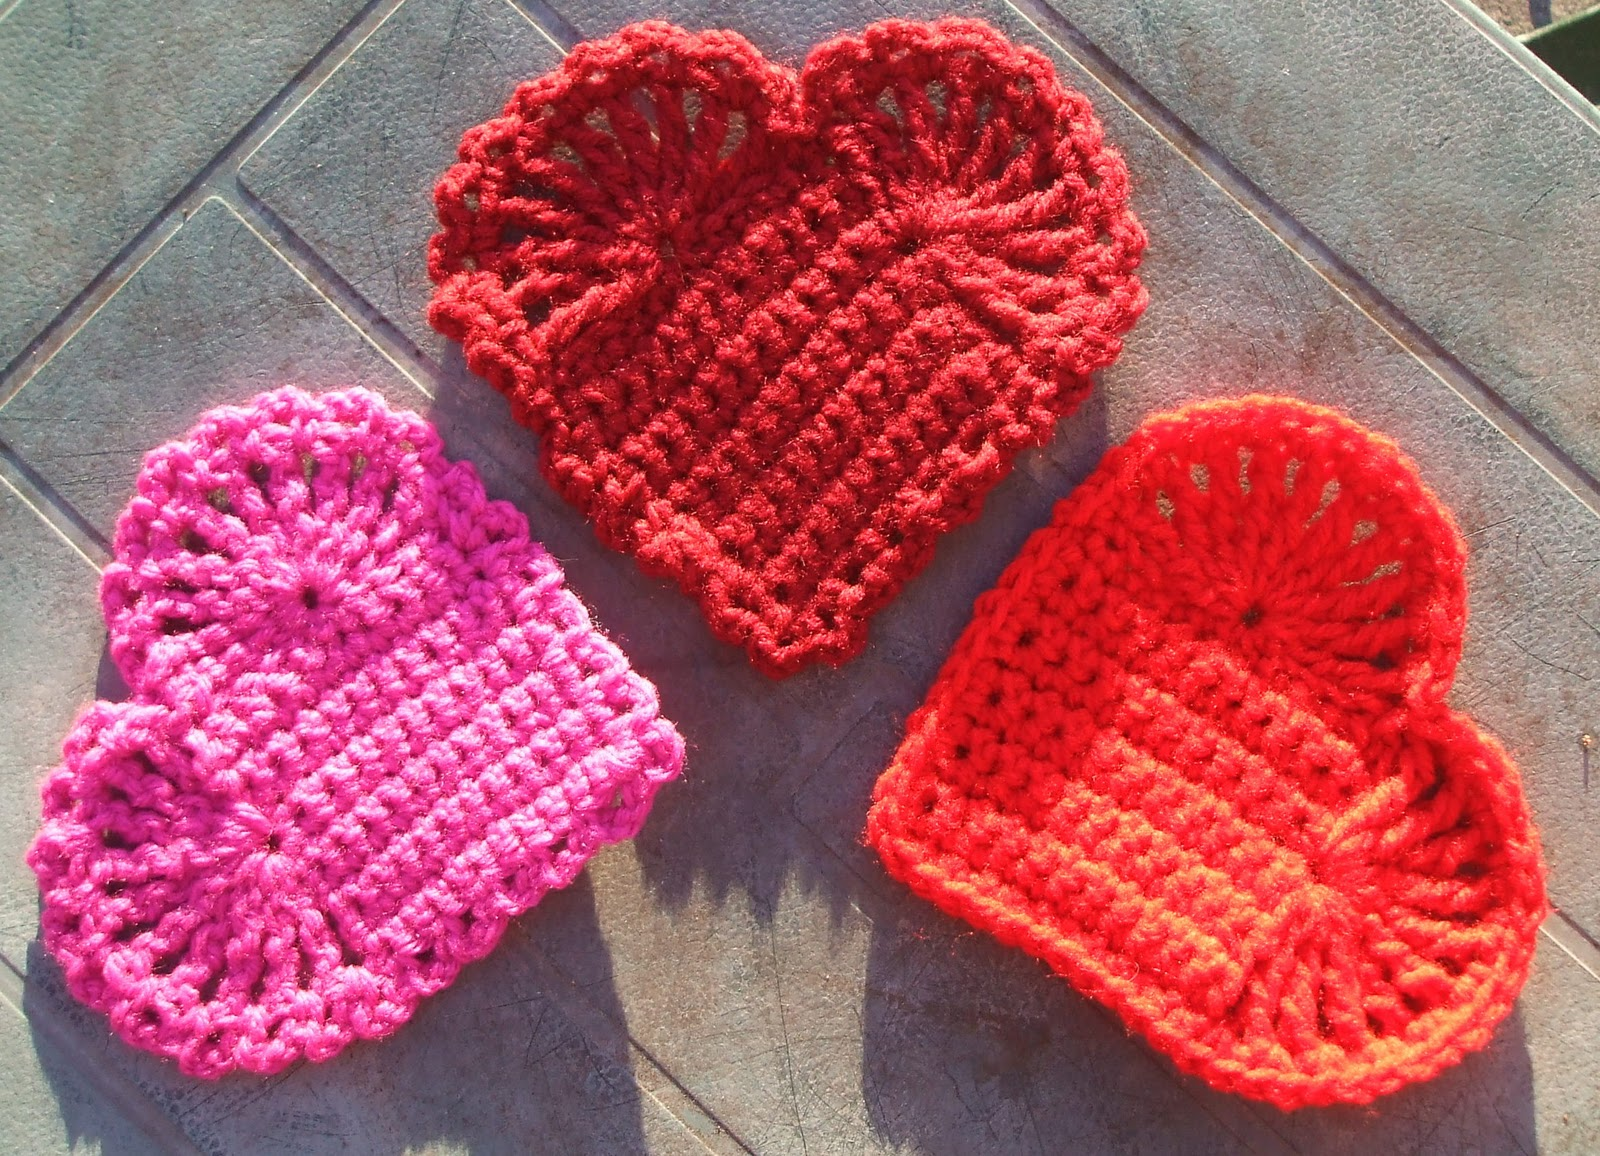 Crocheted Heart Links - InReach - Business class colocation and